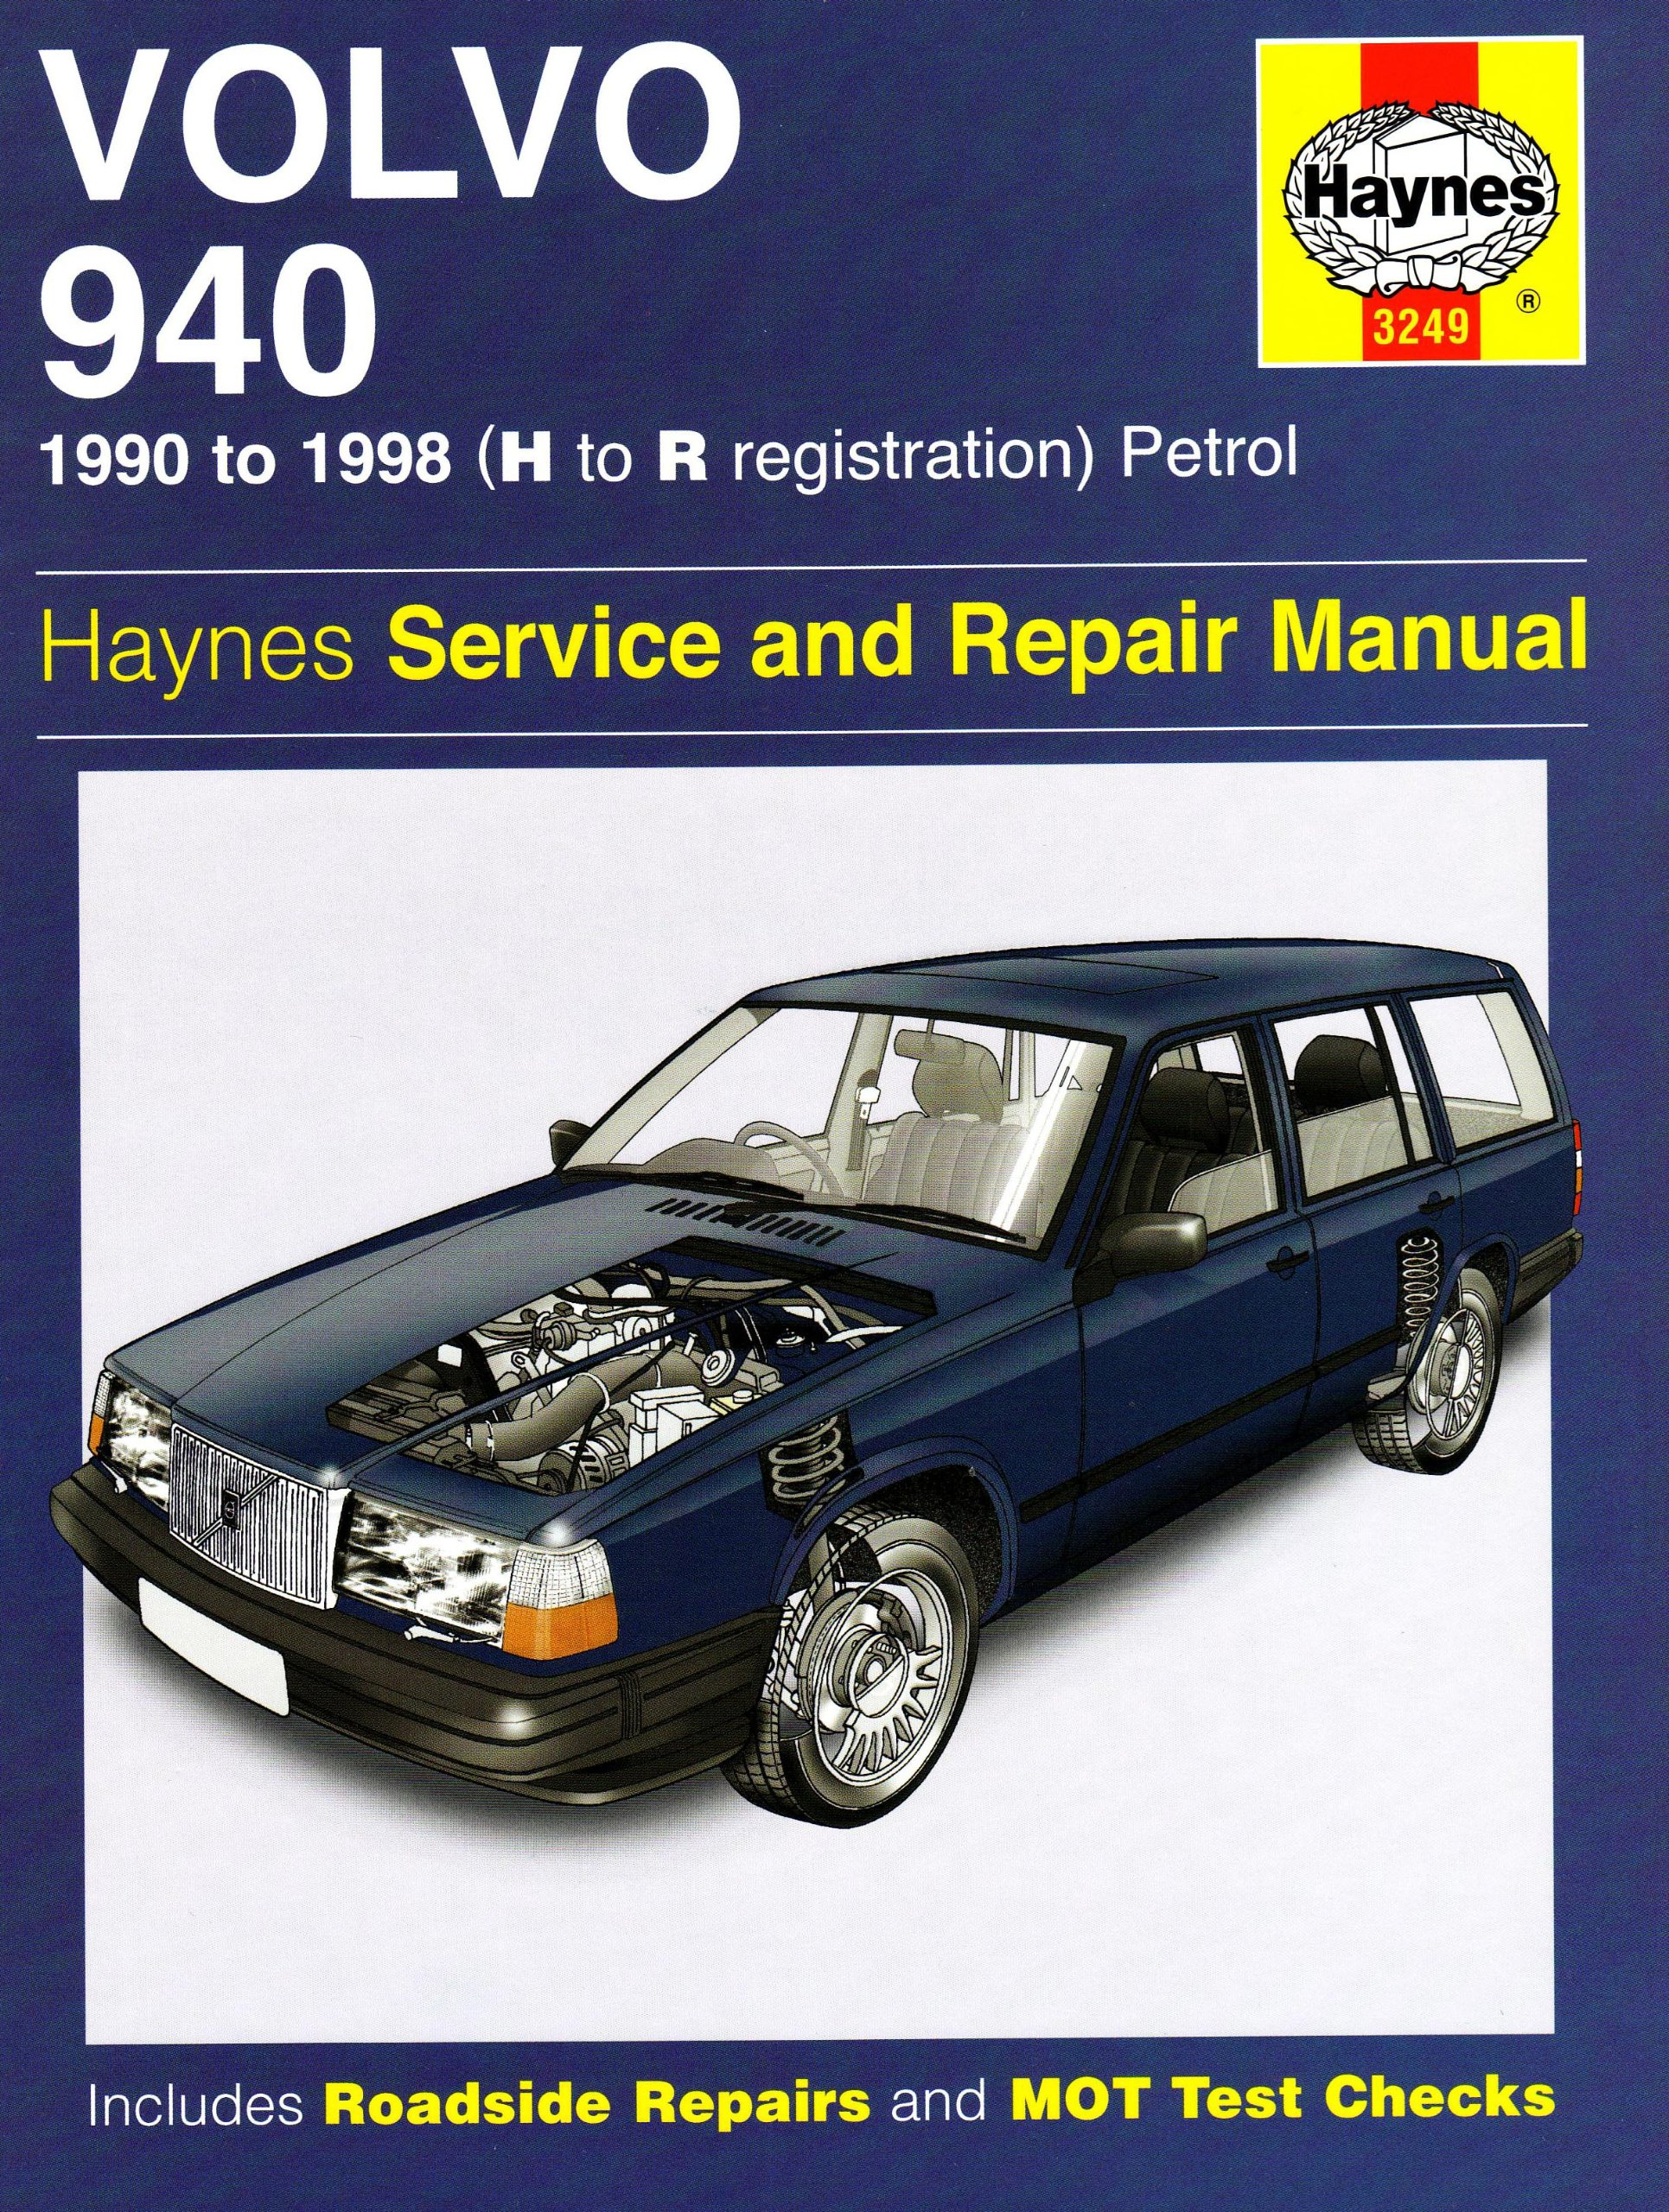 Volvo 940 Petrol Service and Repair Manual: 1990 to 1998 (Haynes Service  and Repair Manuals): John S. Mead: 9781844257393: Amazon.com: Books